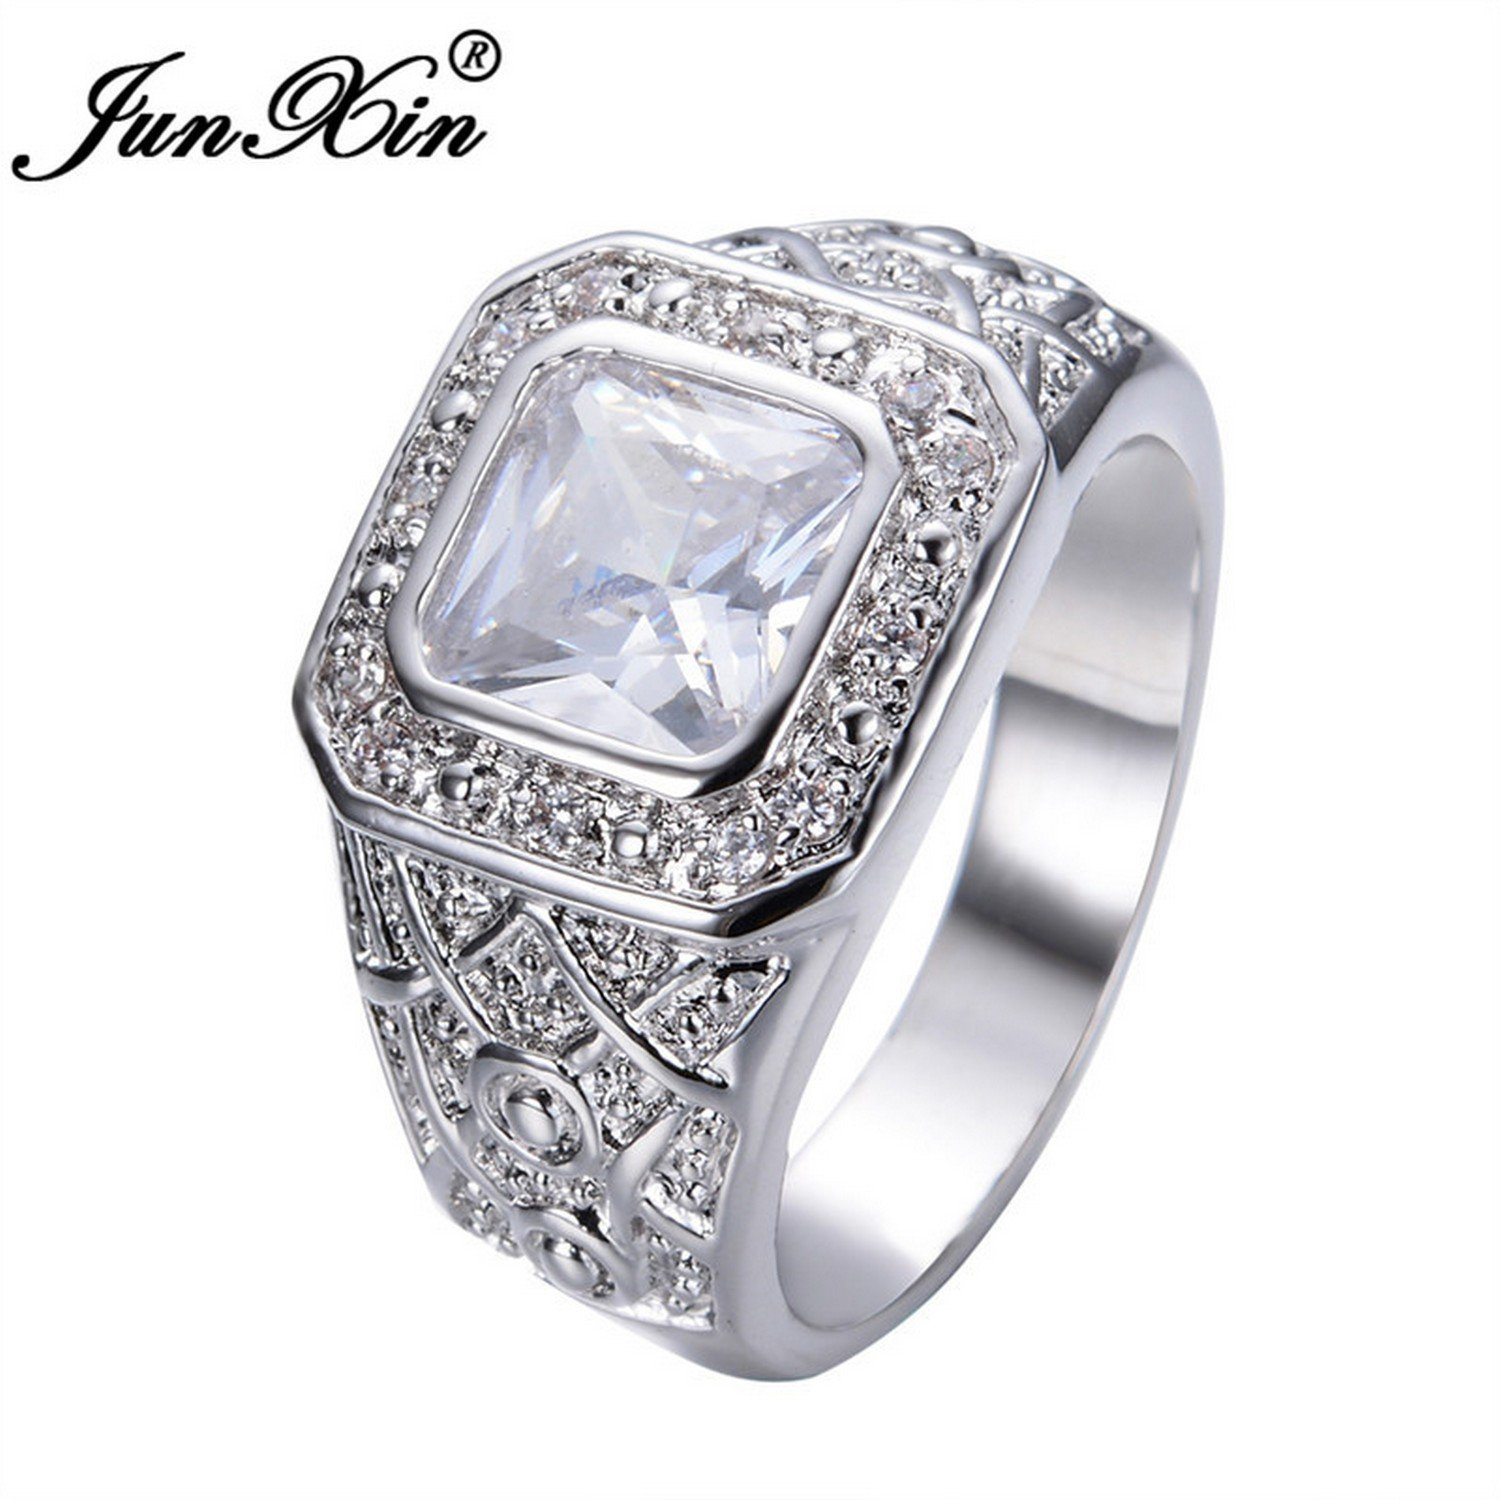 Slyq Jewelry Size 10 New Brand Design White Ring gold Filled CZ Wedding Jewelry Fashion Rings for Men and Women RW0280